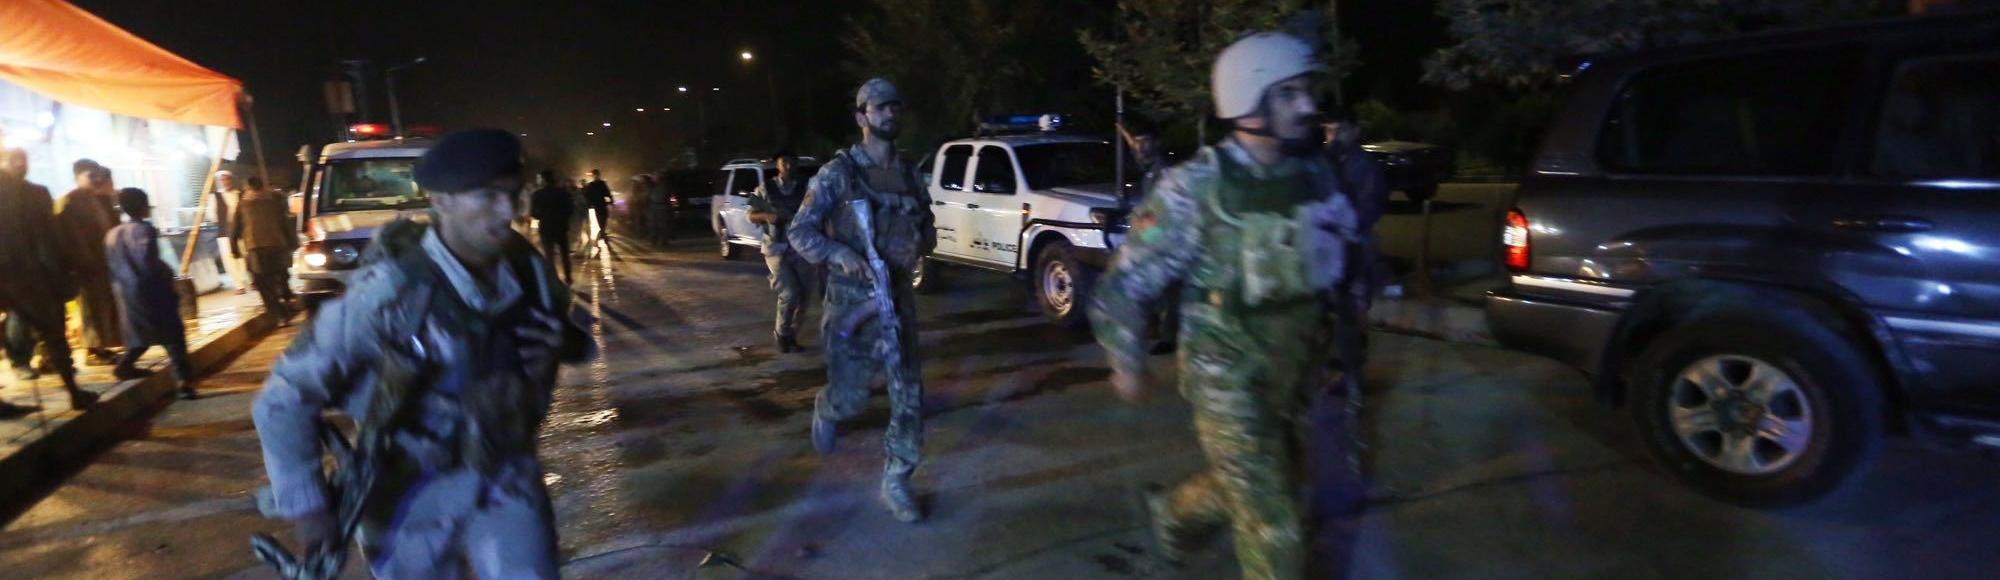 Hundreds of students trapped in attack on American University in Kabul